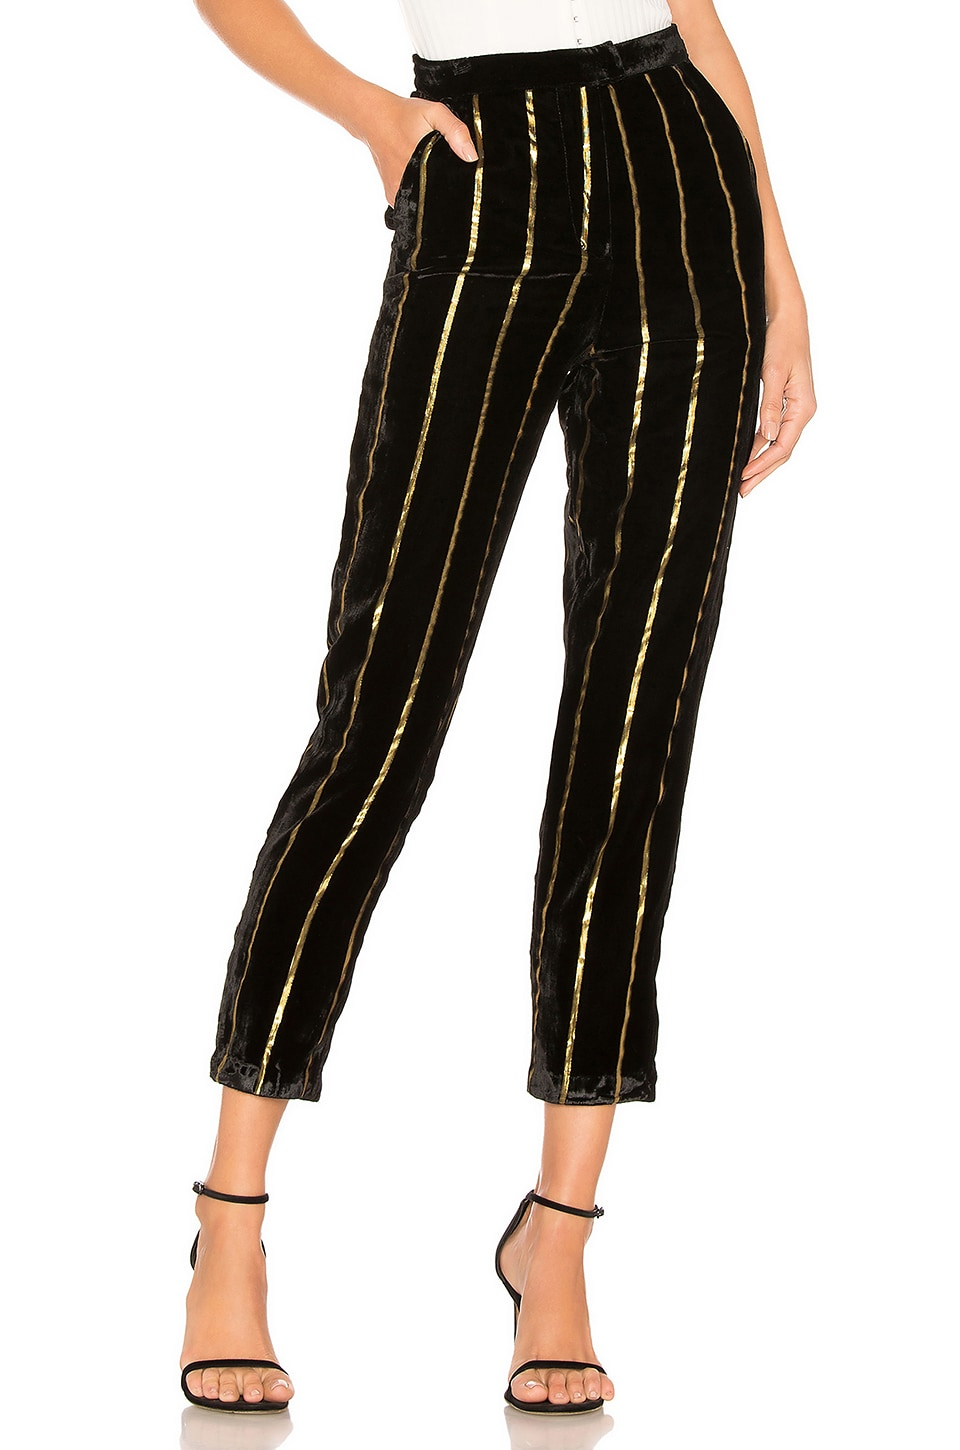 L'Academie The Fallon Pant in Black & Gold Stripe